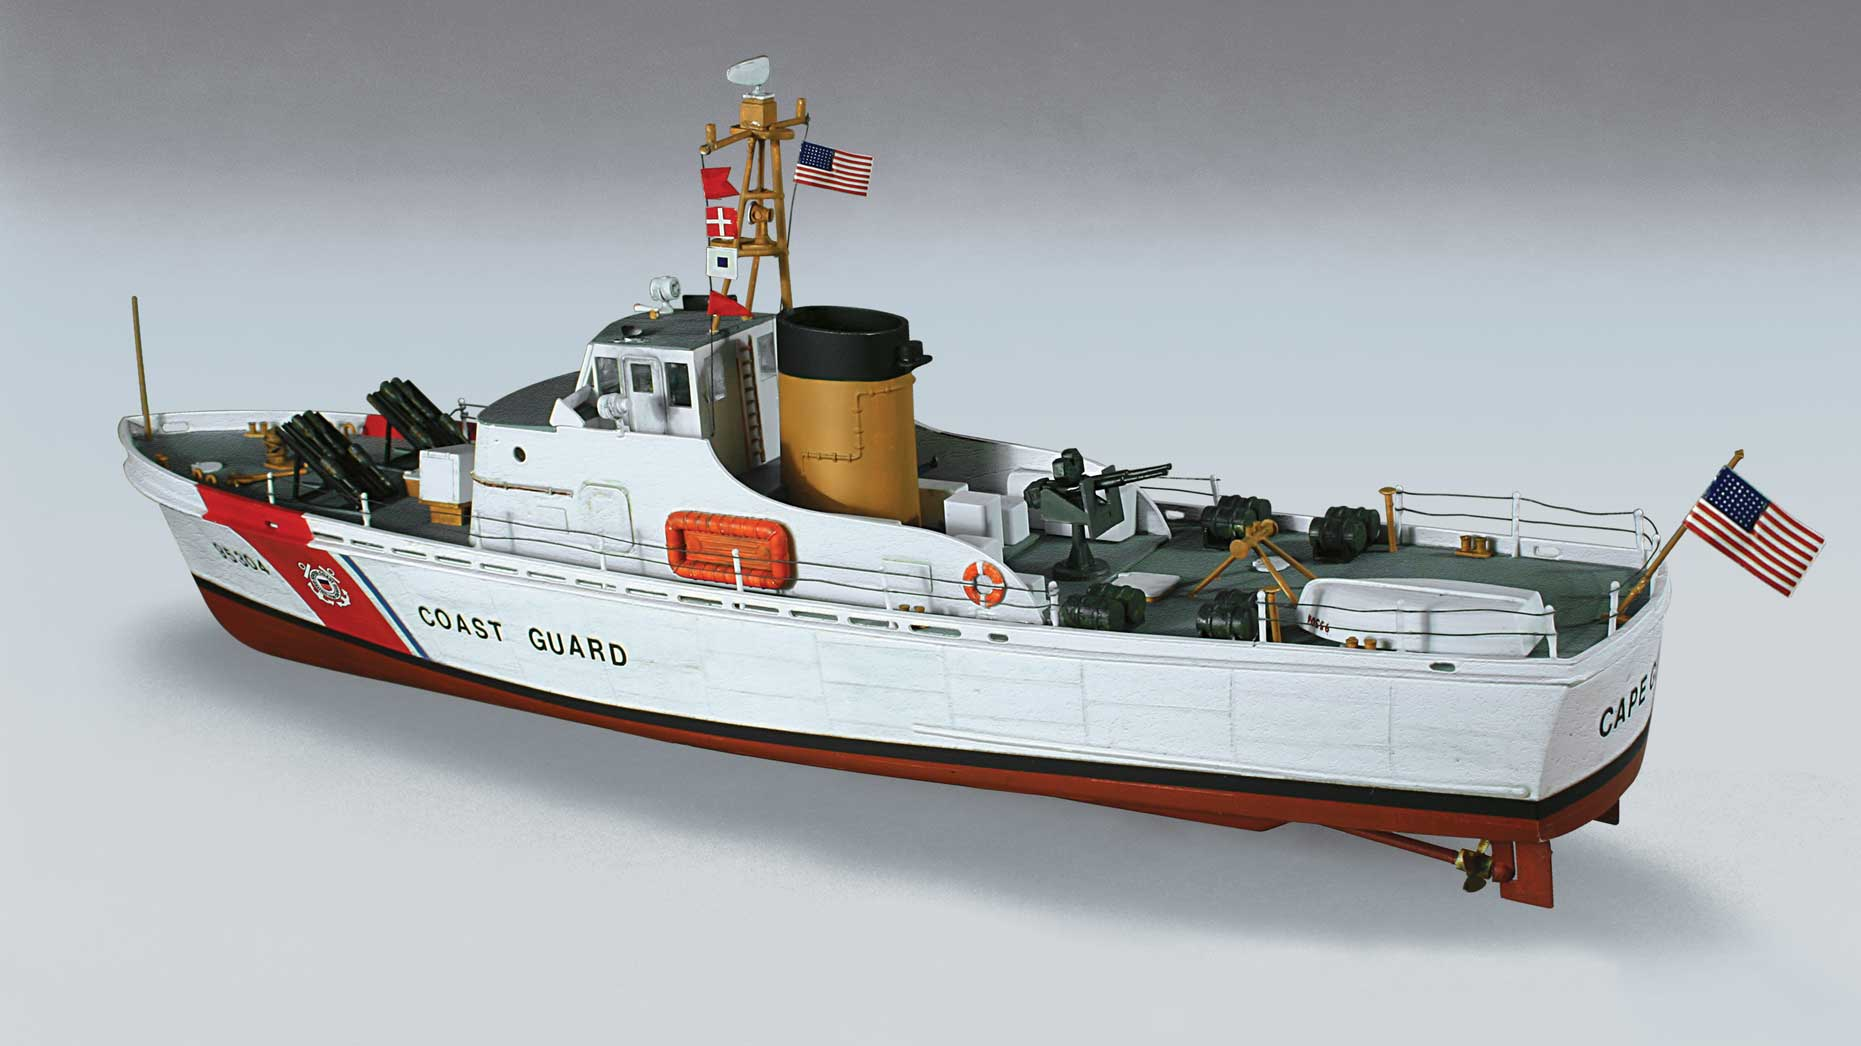 This Kit Features The Iconic Cape Class Patrol Boat Used By The US Coast  Guard. From The 1950s Until The 1980s These 95 Ft Cutters Would Be Seen  Patrolling ...